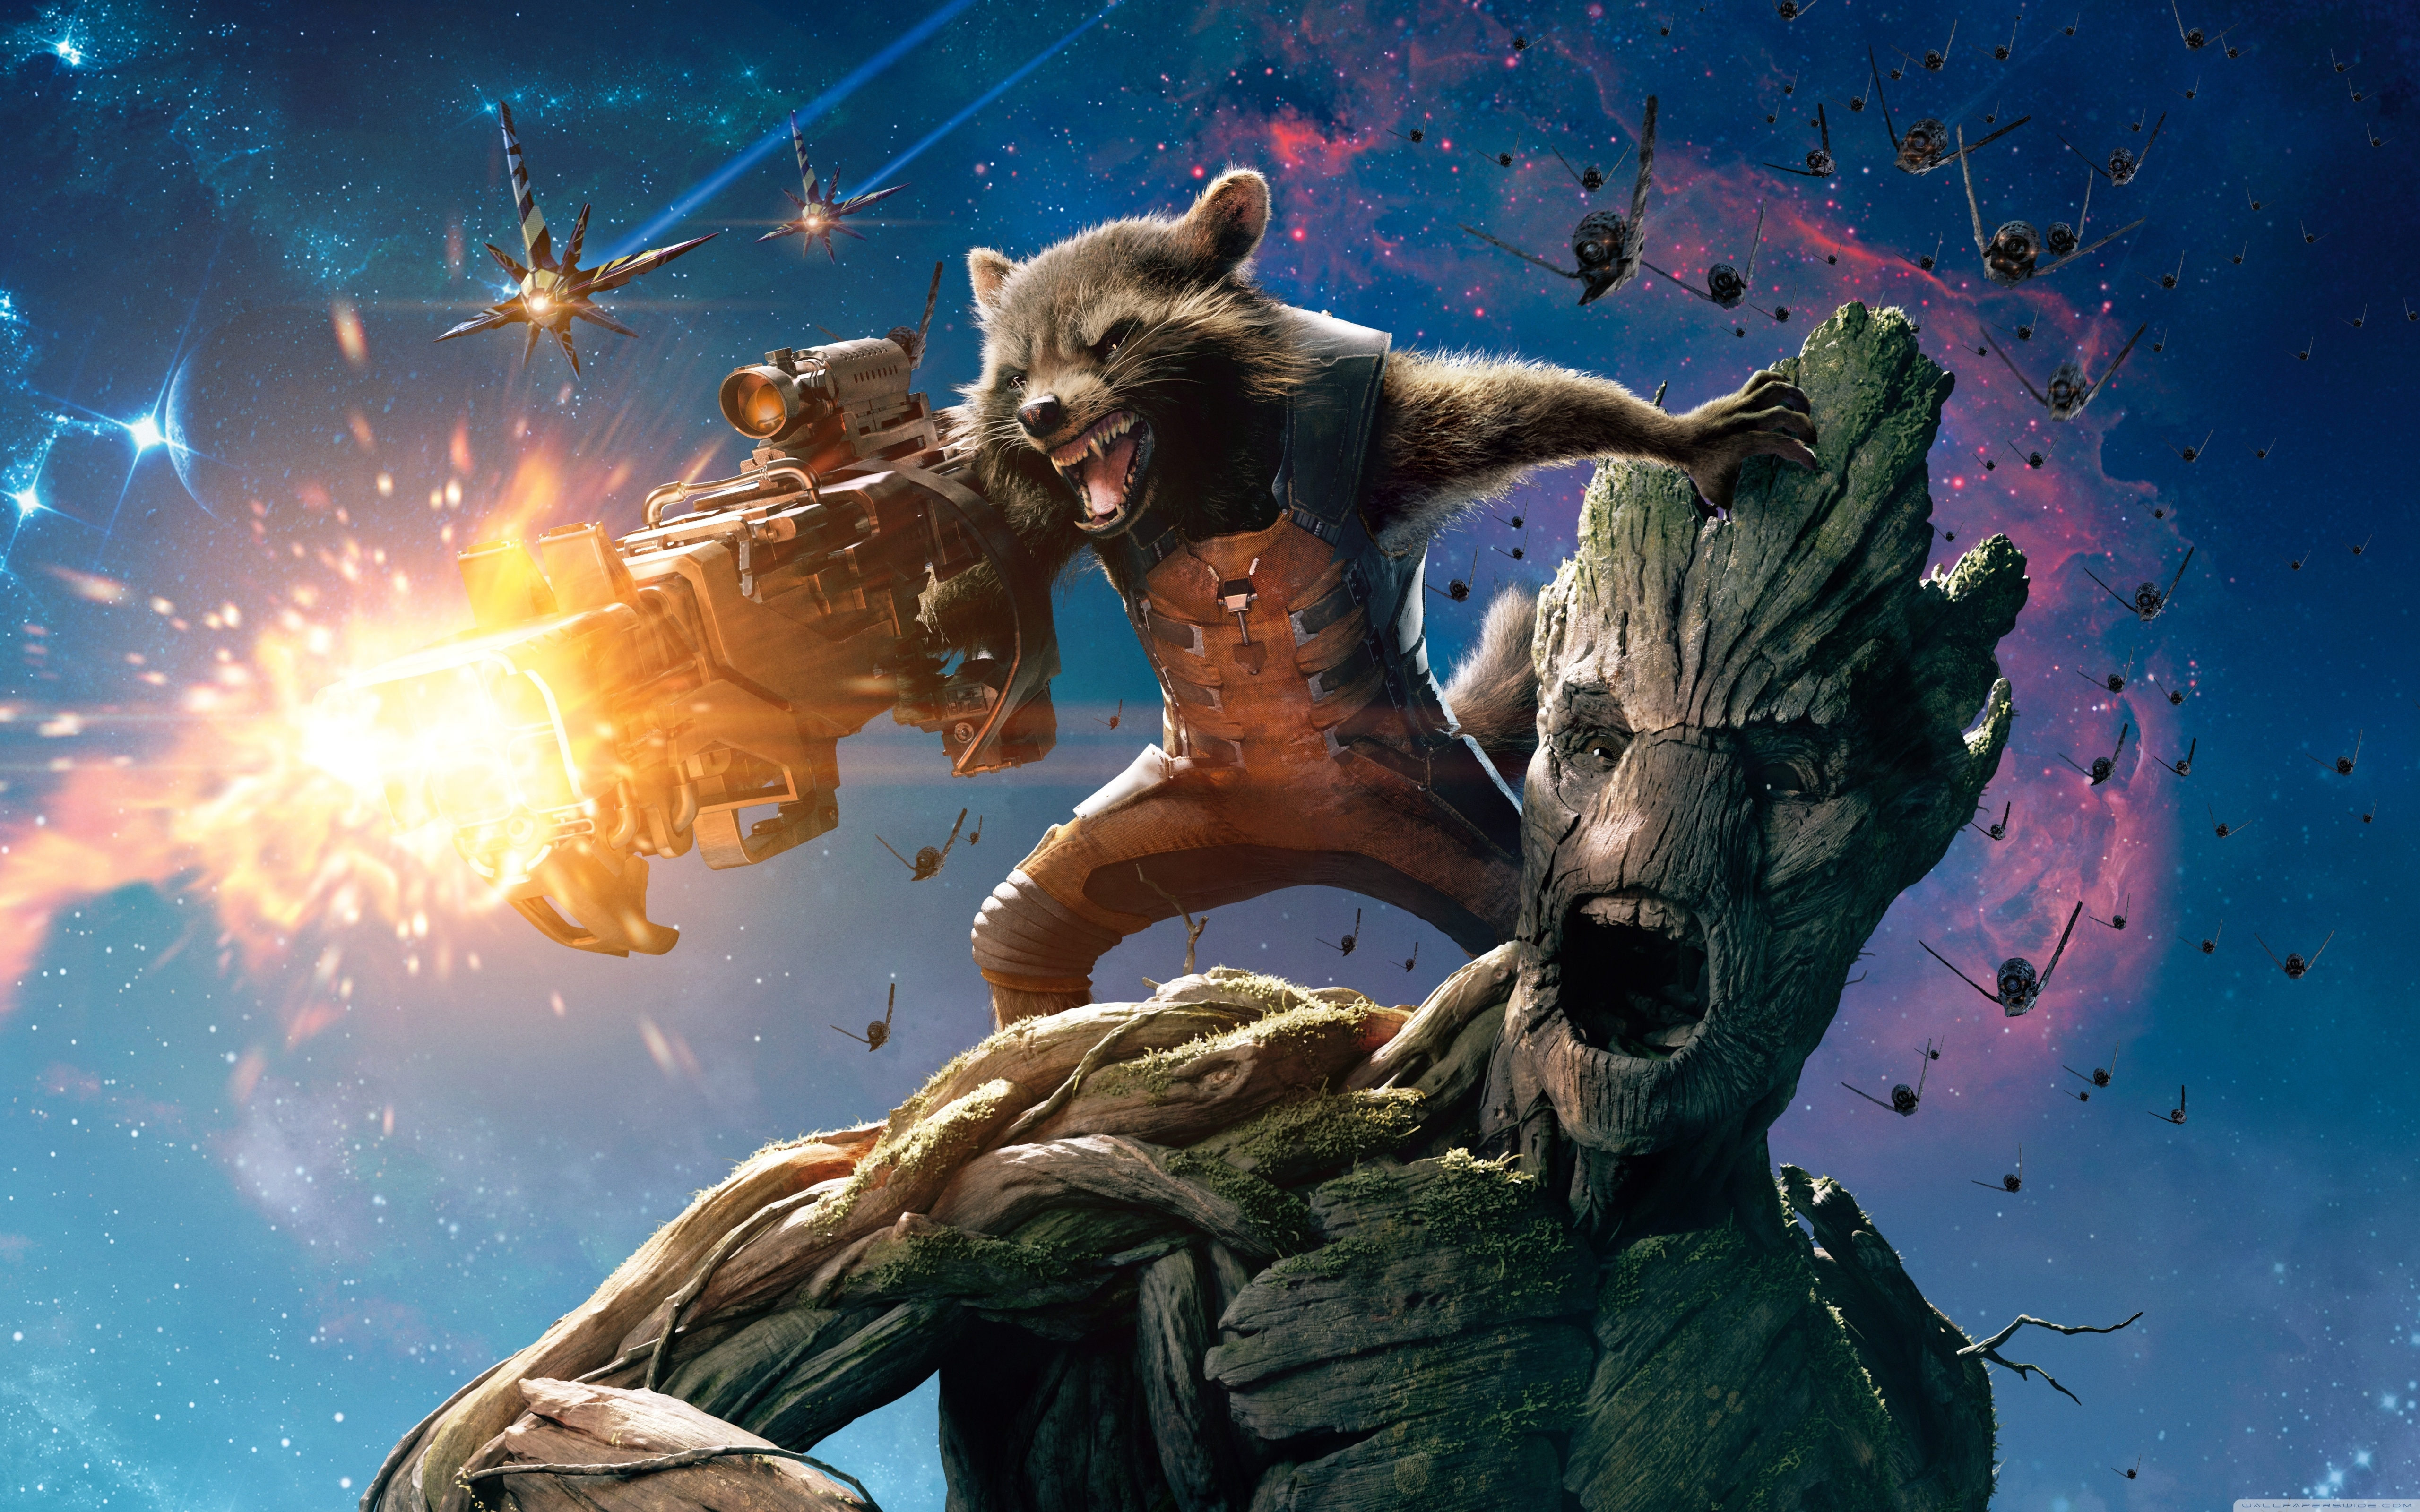 guardians of the galaxy groot and rocket raccoon ❤ 4k hd desktop